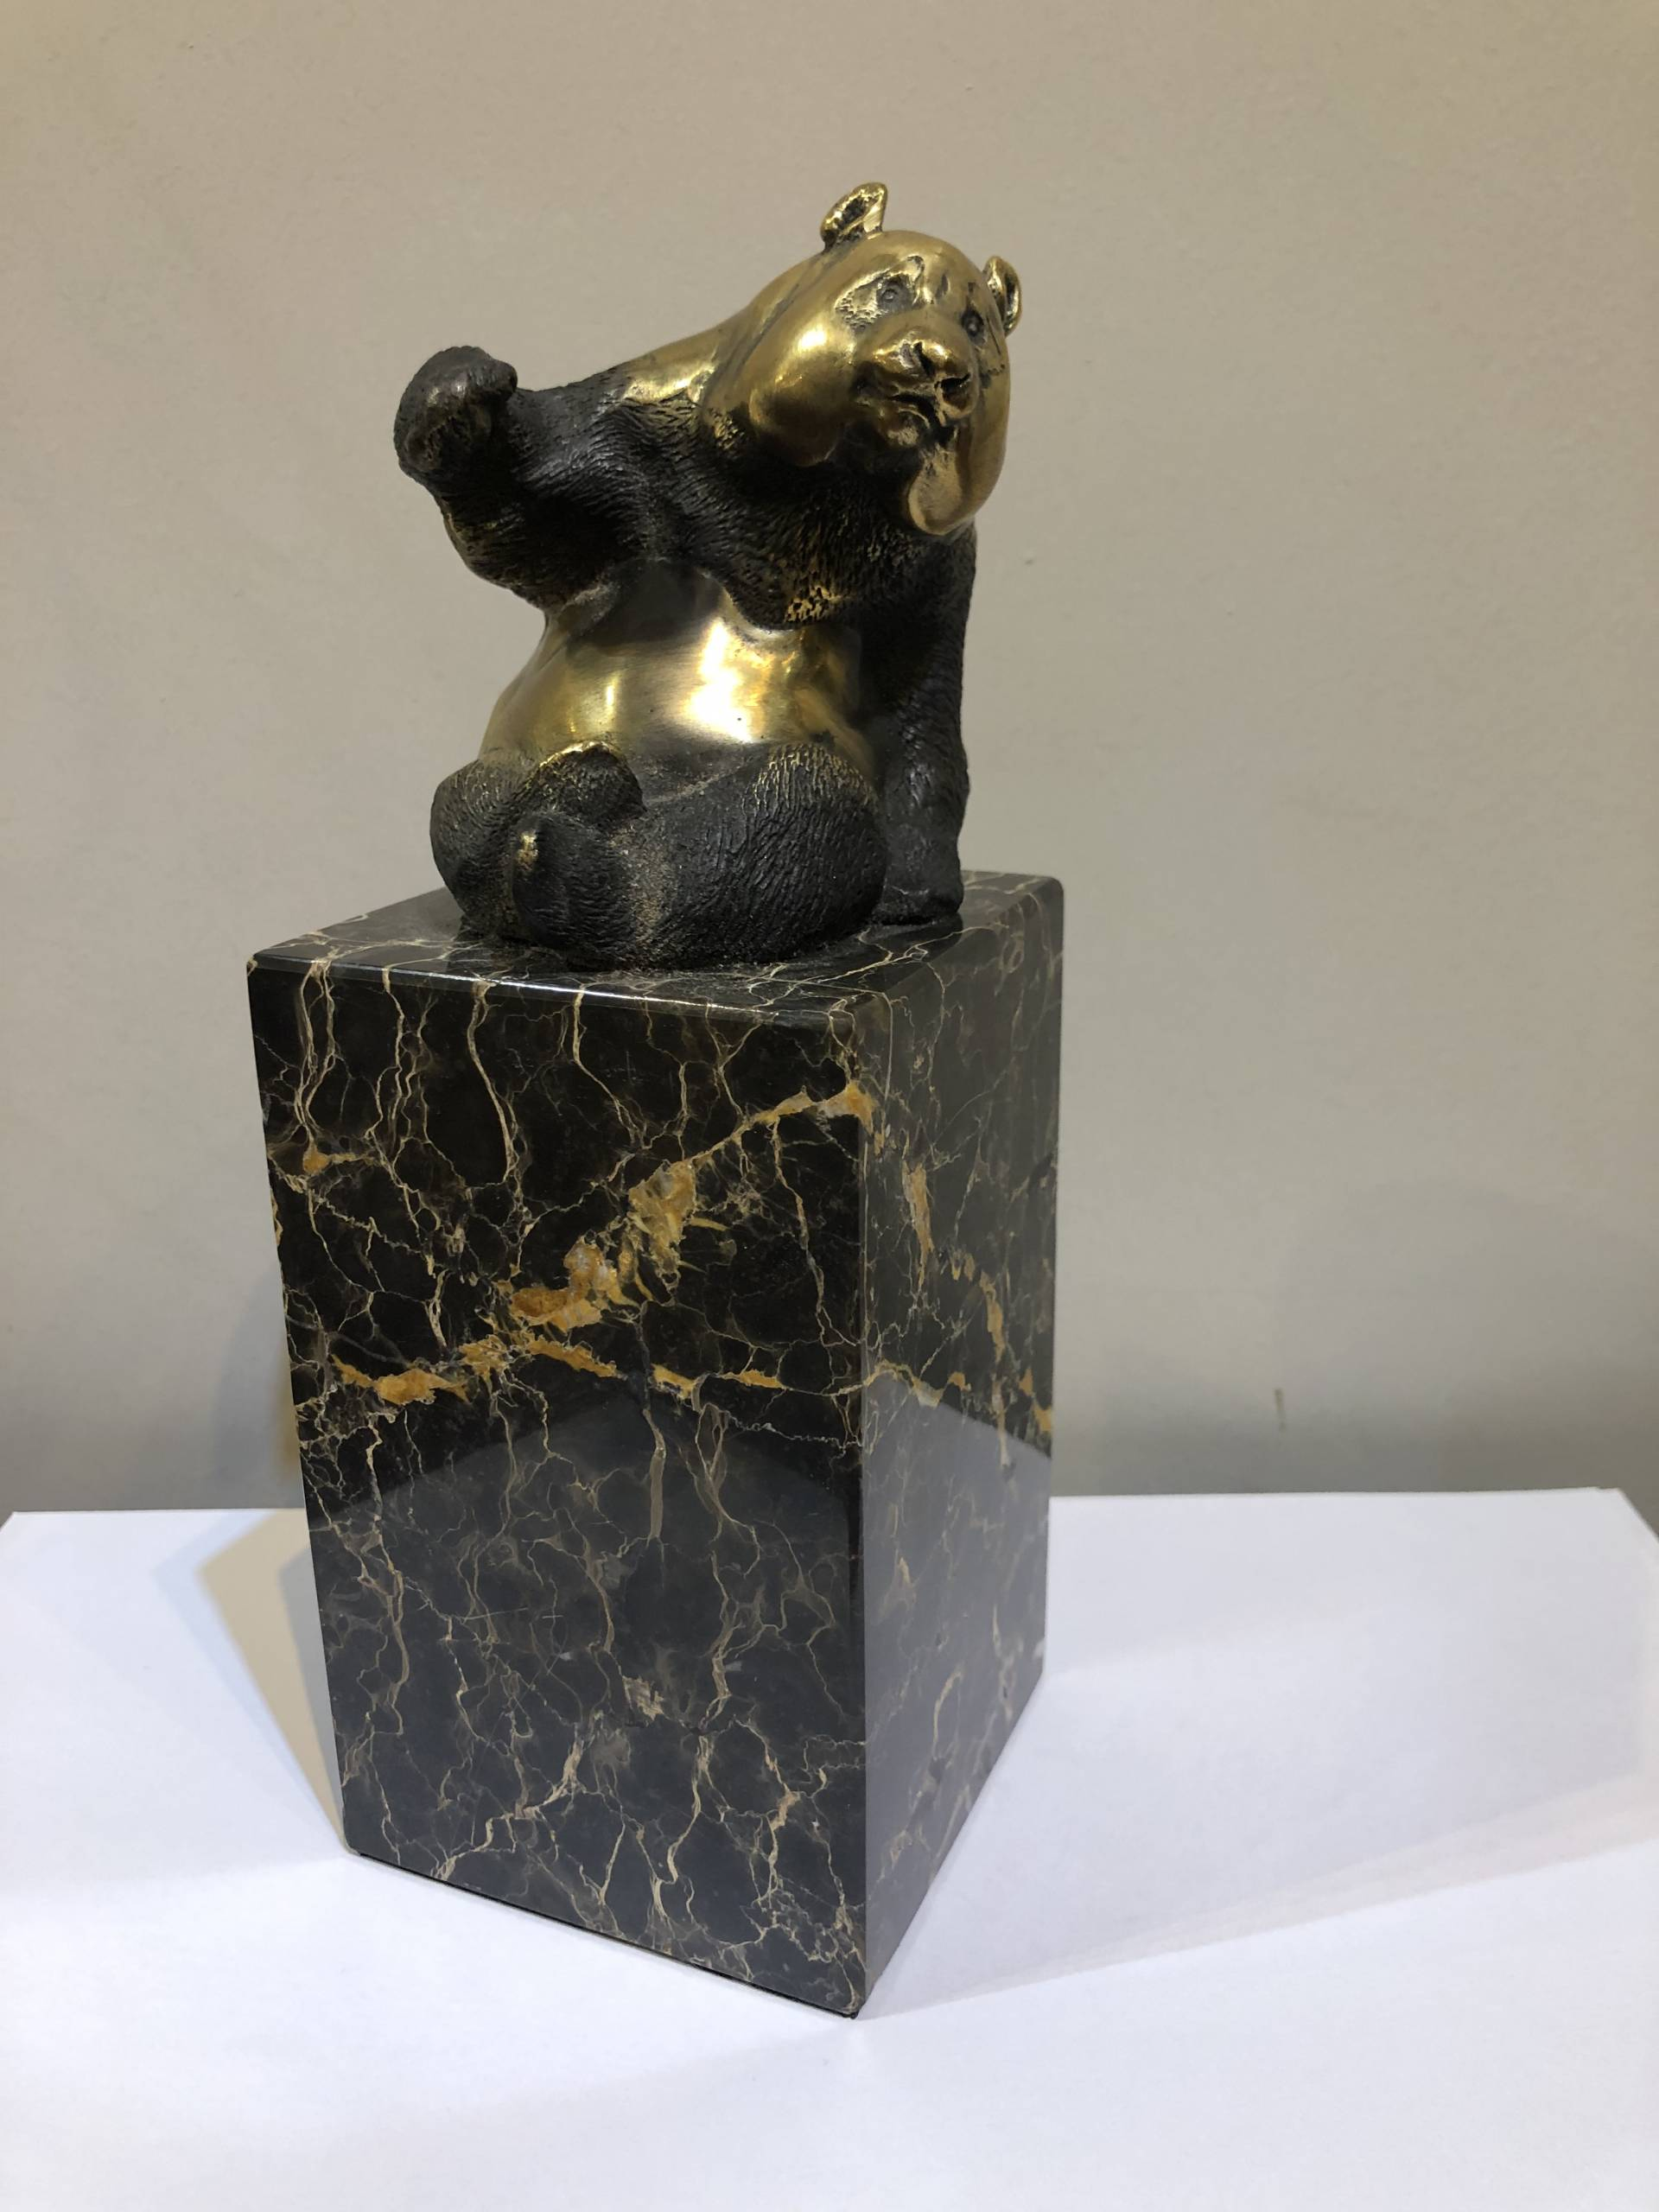 QUIRKY BRONZE BEAR SEATED ON A PORTOR MARBLE PLINTH